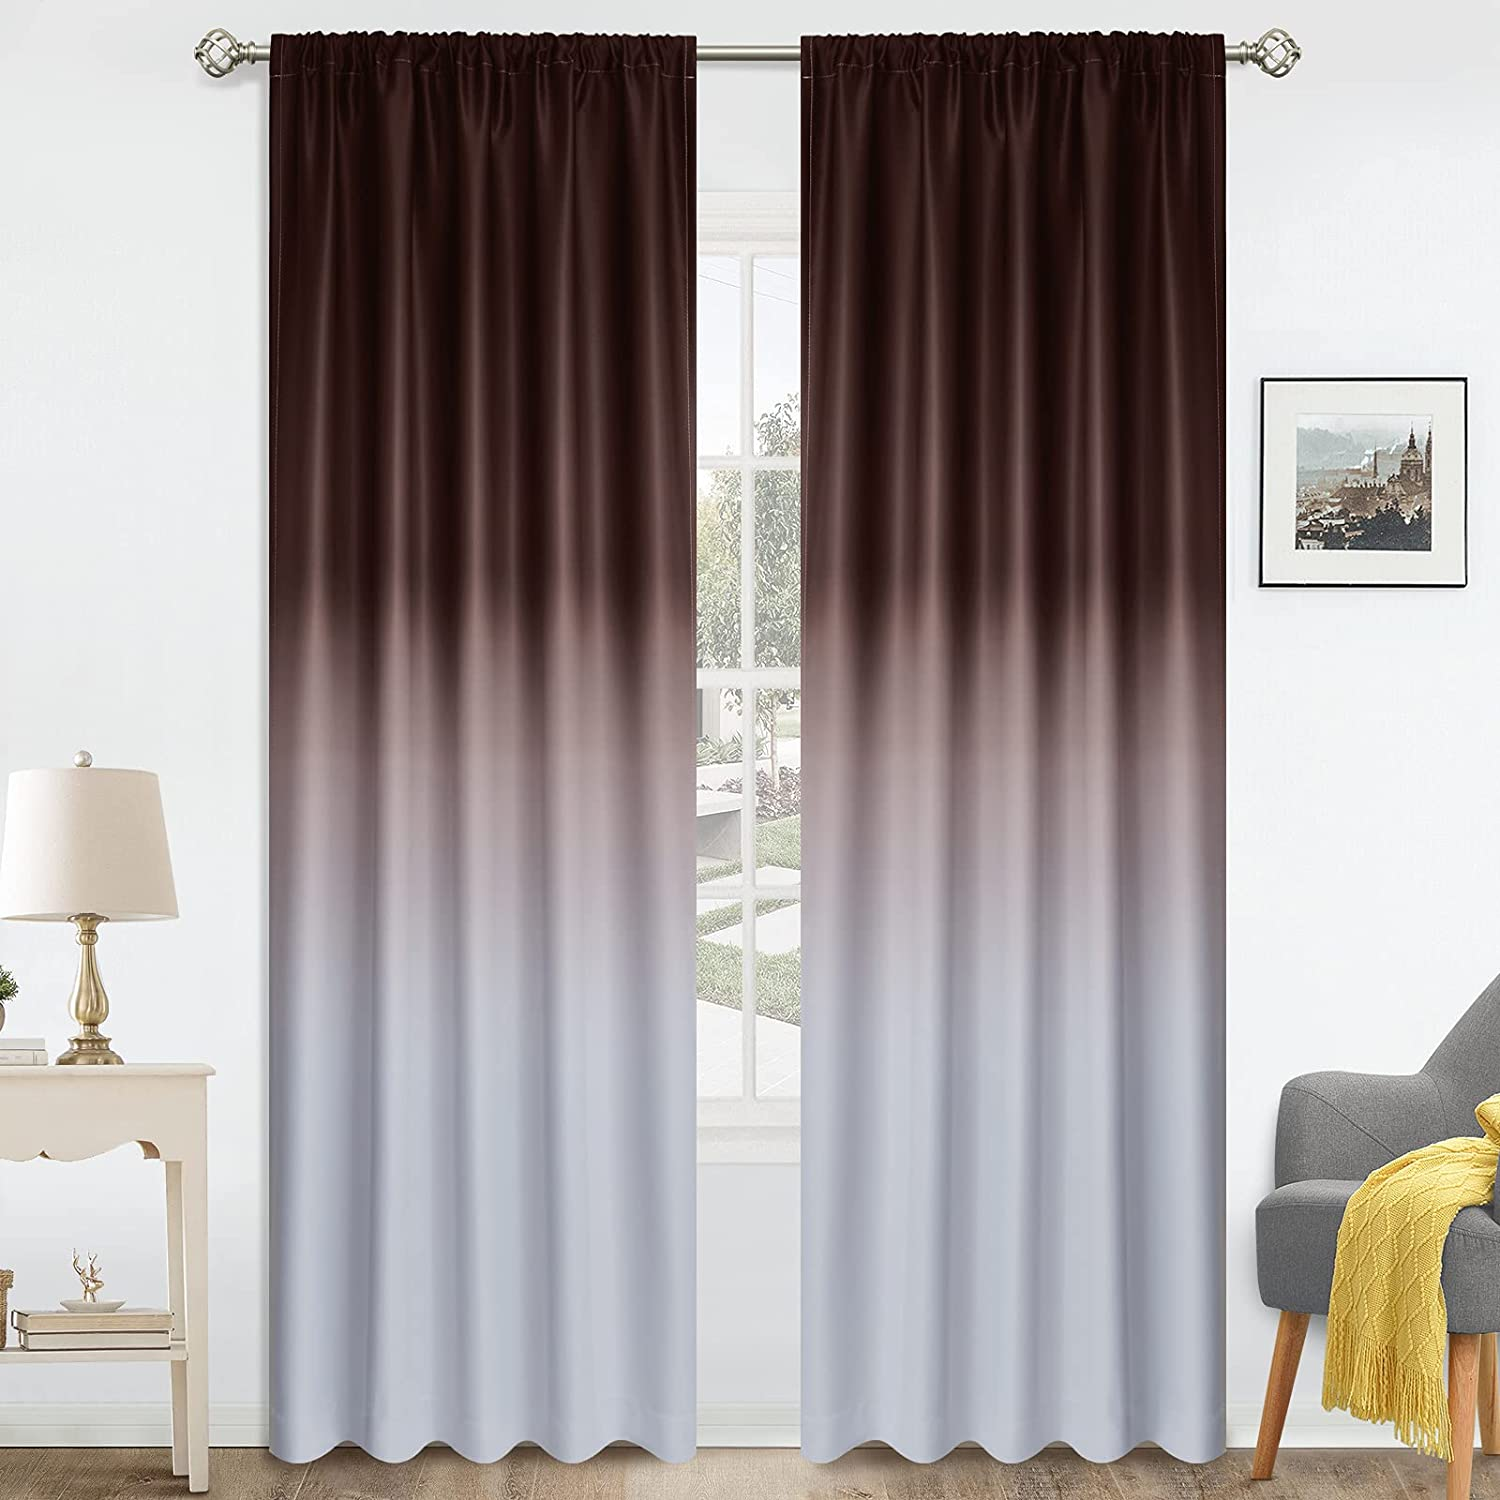 COSVIYA Rod sale Pocket Ombre Room Curtains inch famous Length Darkening 84